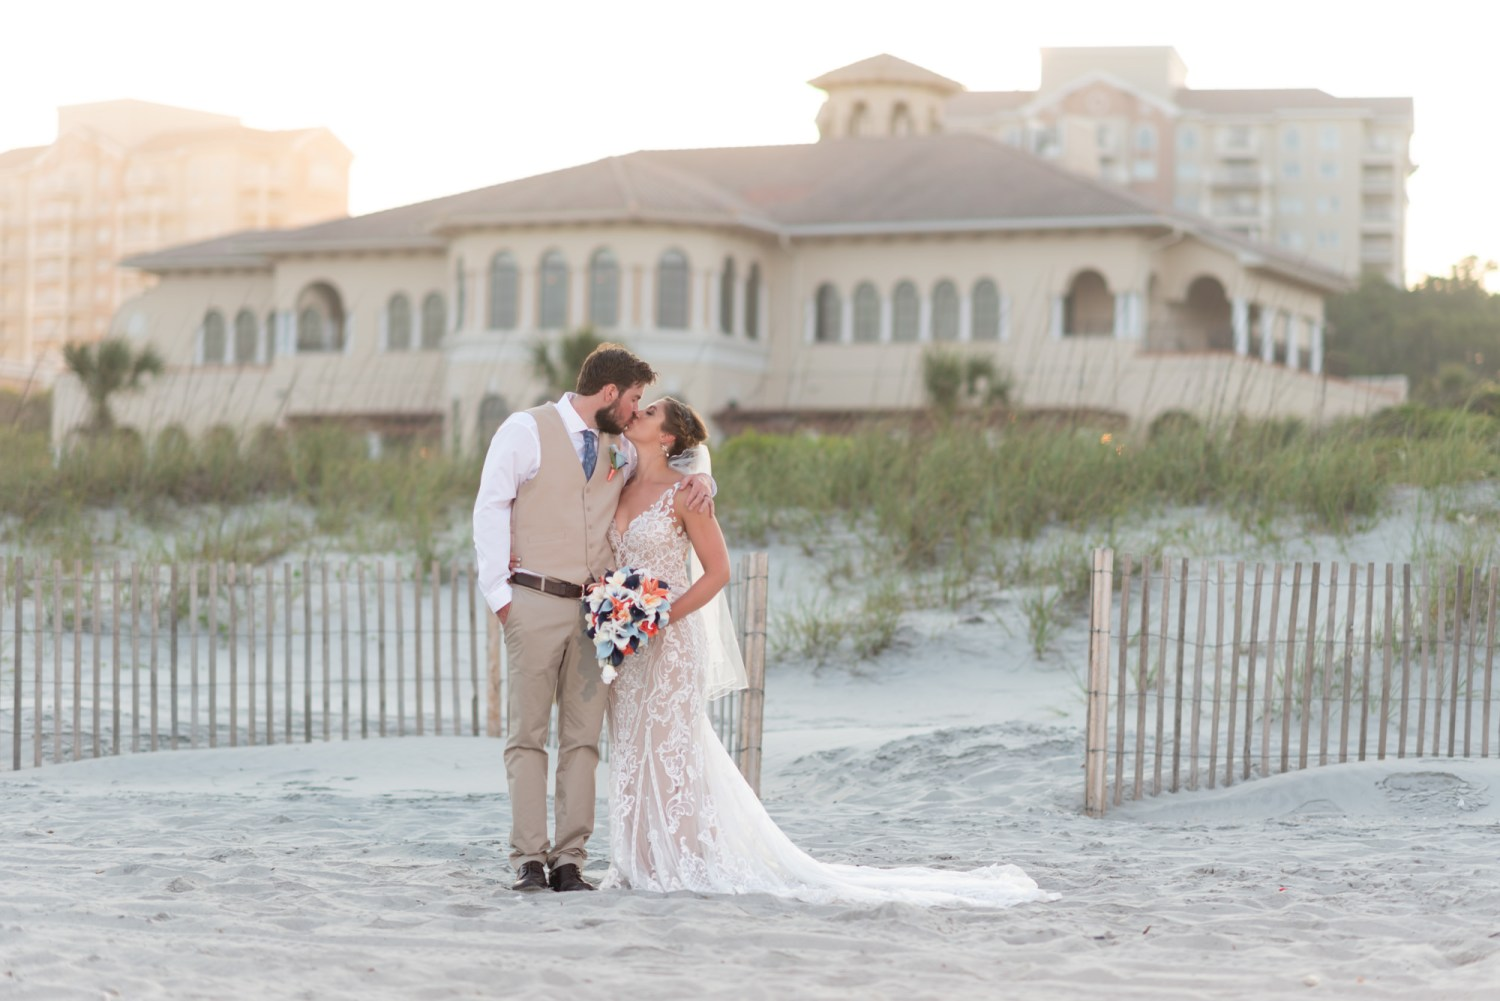 Bride and groom with the clubhouse in the background - Grande Dunes Ocean Club - Myrtle Beach